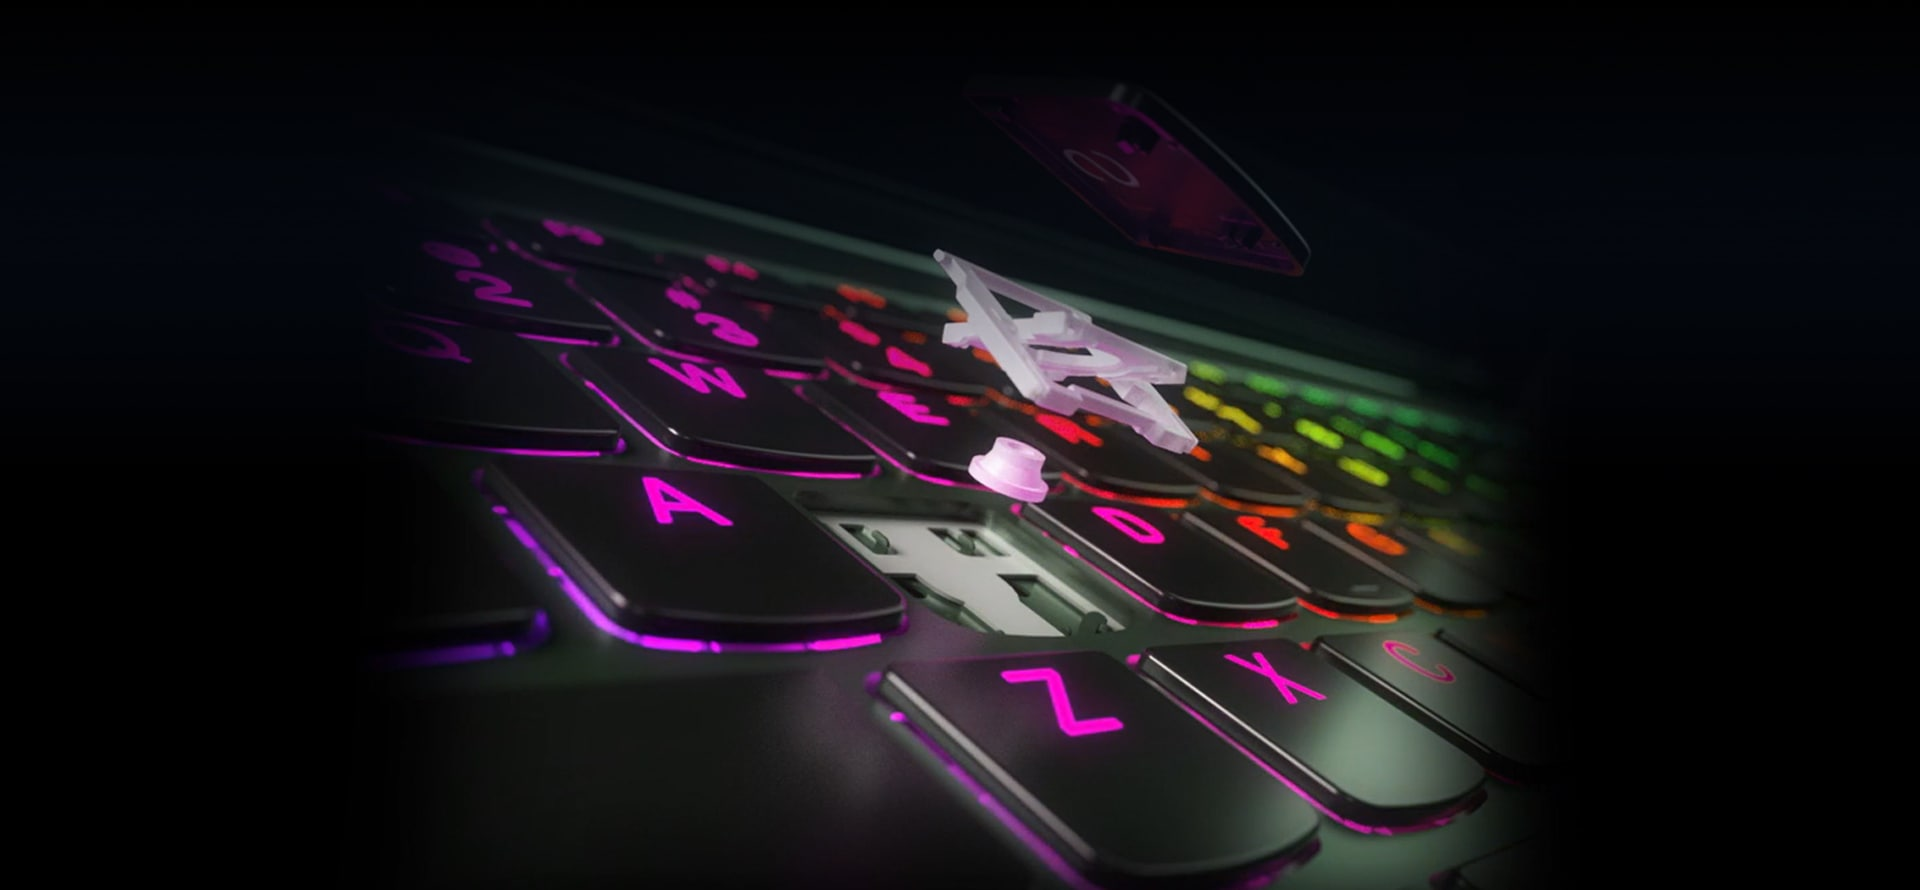 Up close view of Lenovo keyboard and track button with colorful backlighting